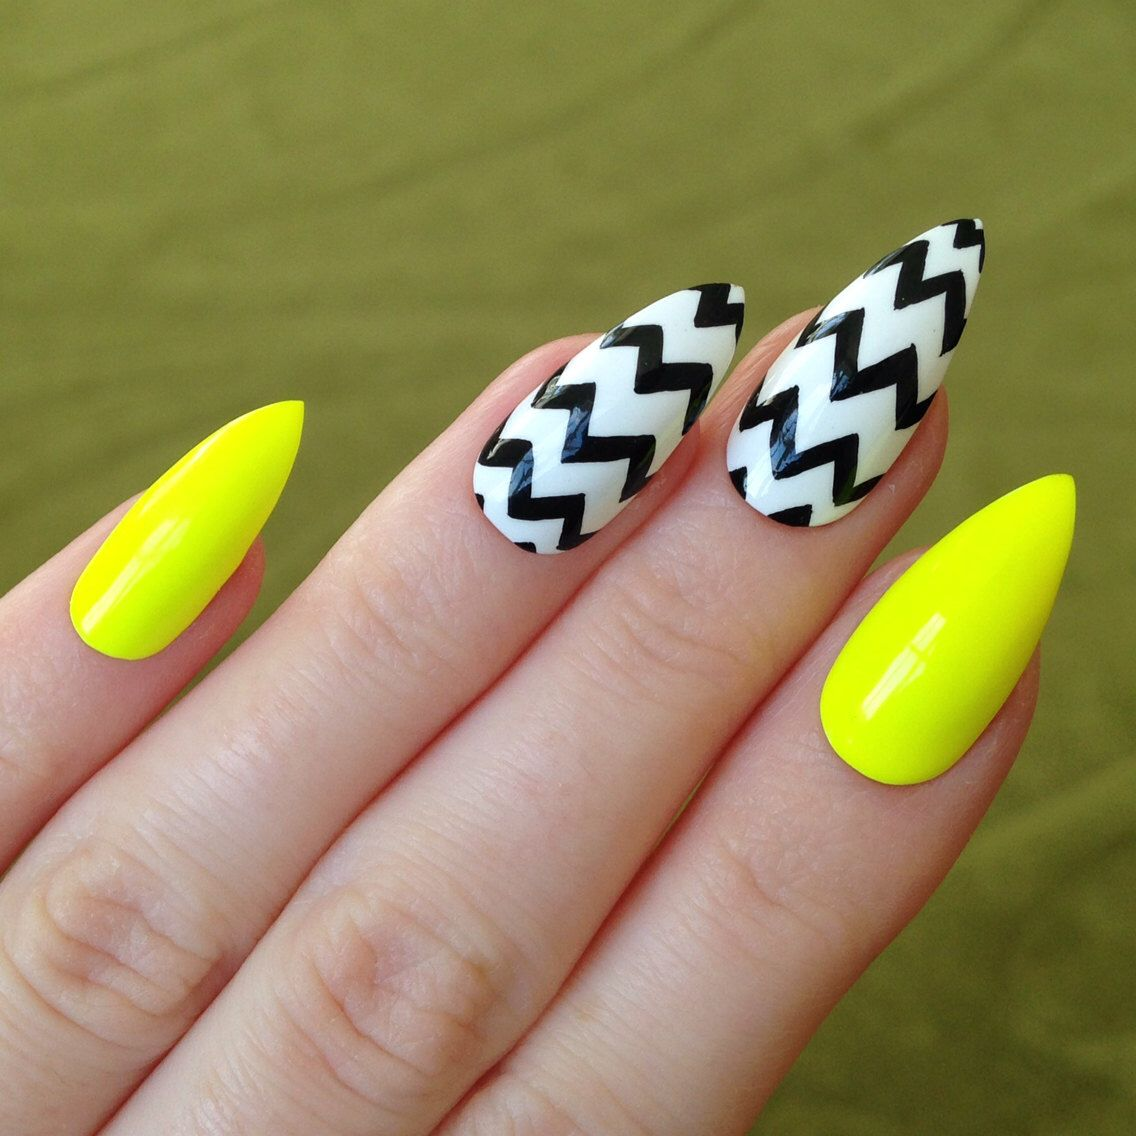 Pin by Evelien Severeyns on nails | Pinterest